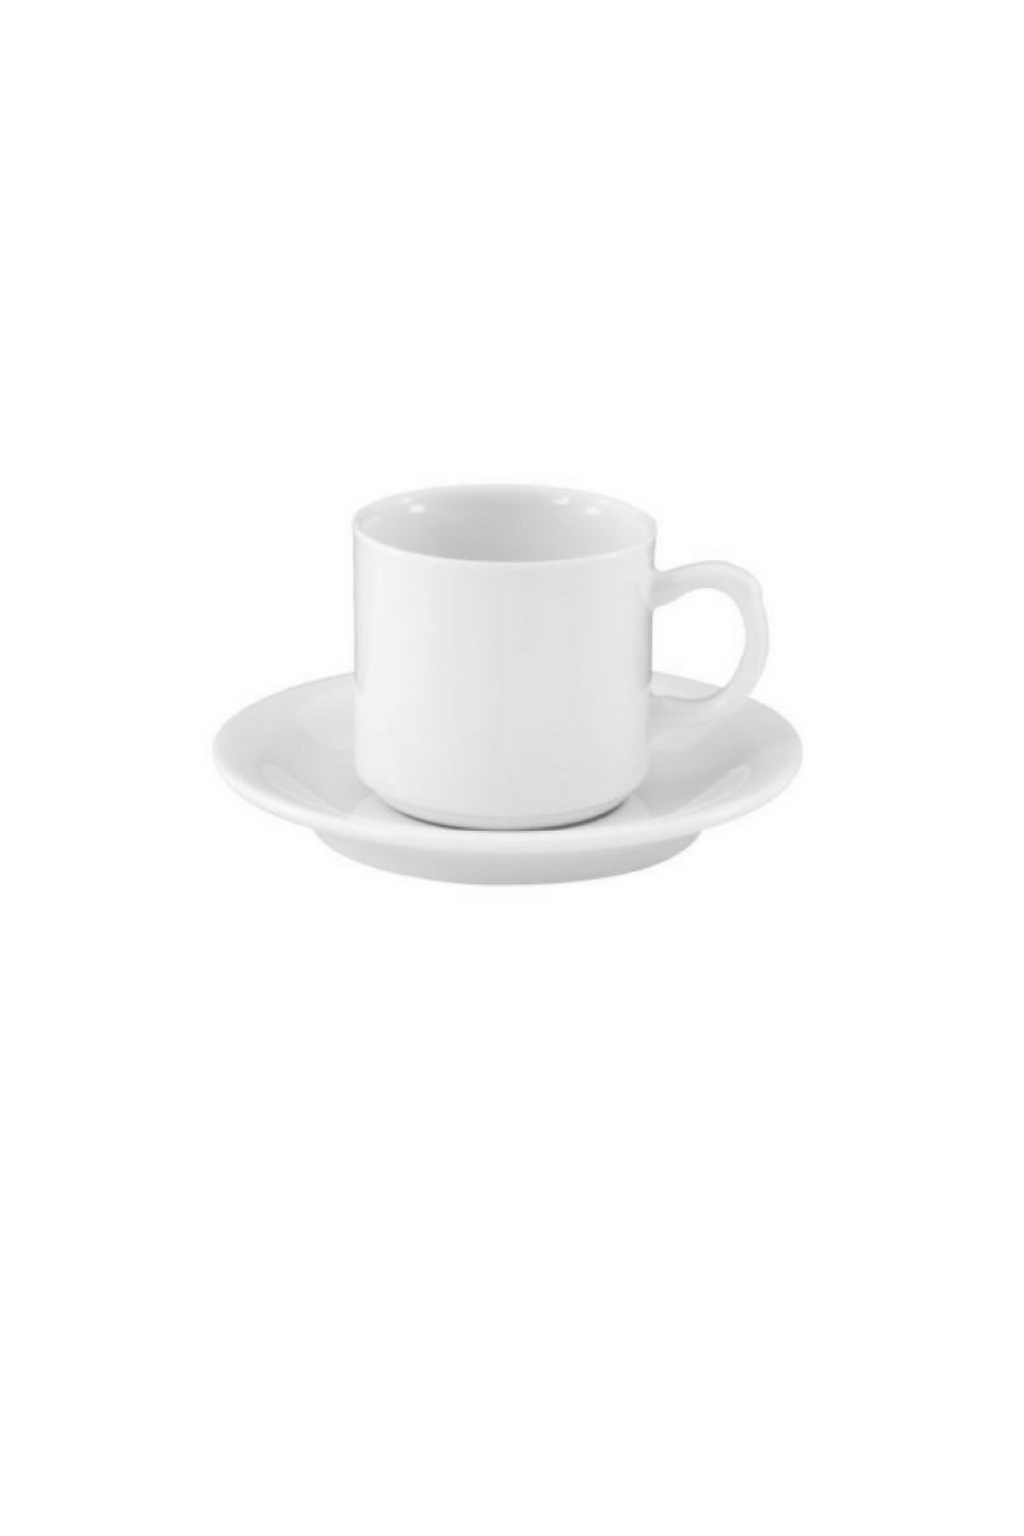 Crockery - Cup & Saucer Set